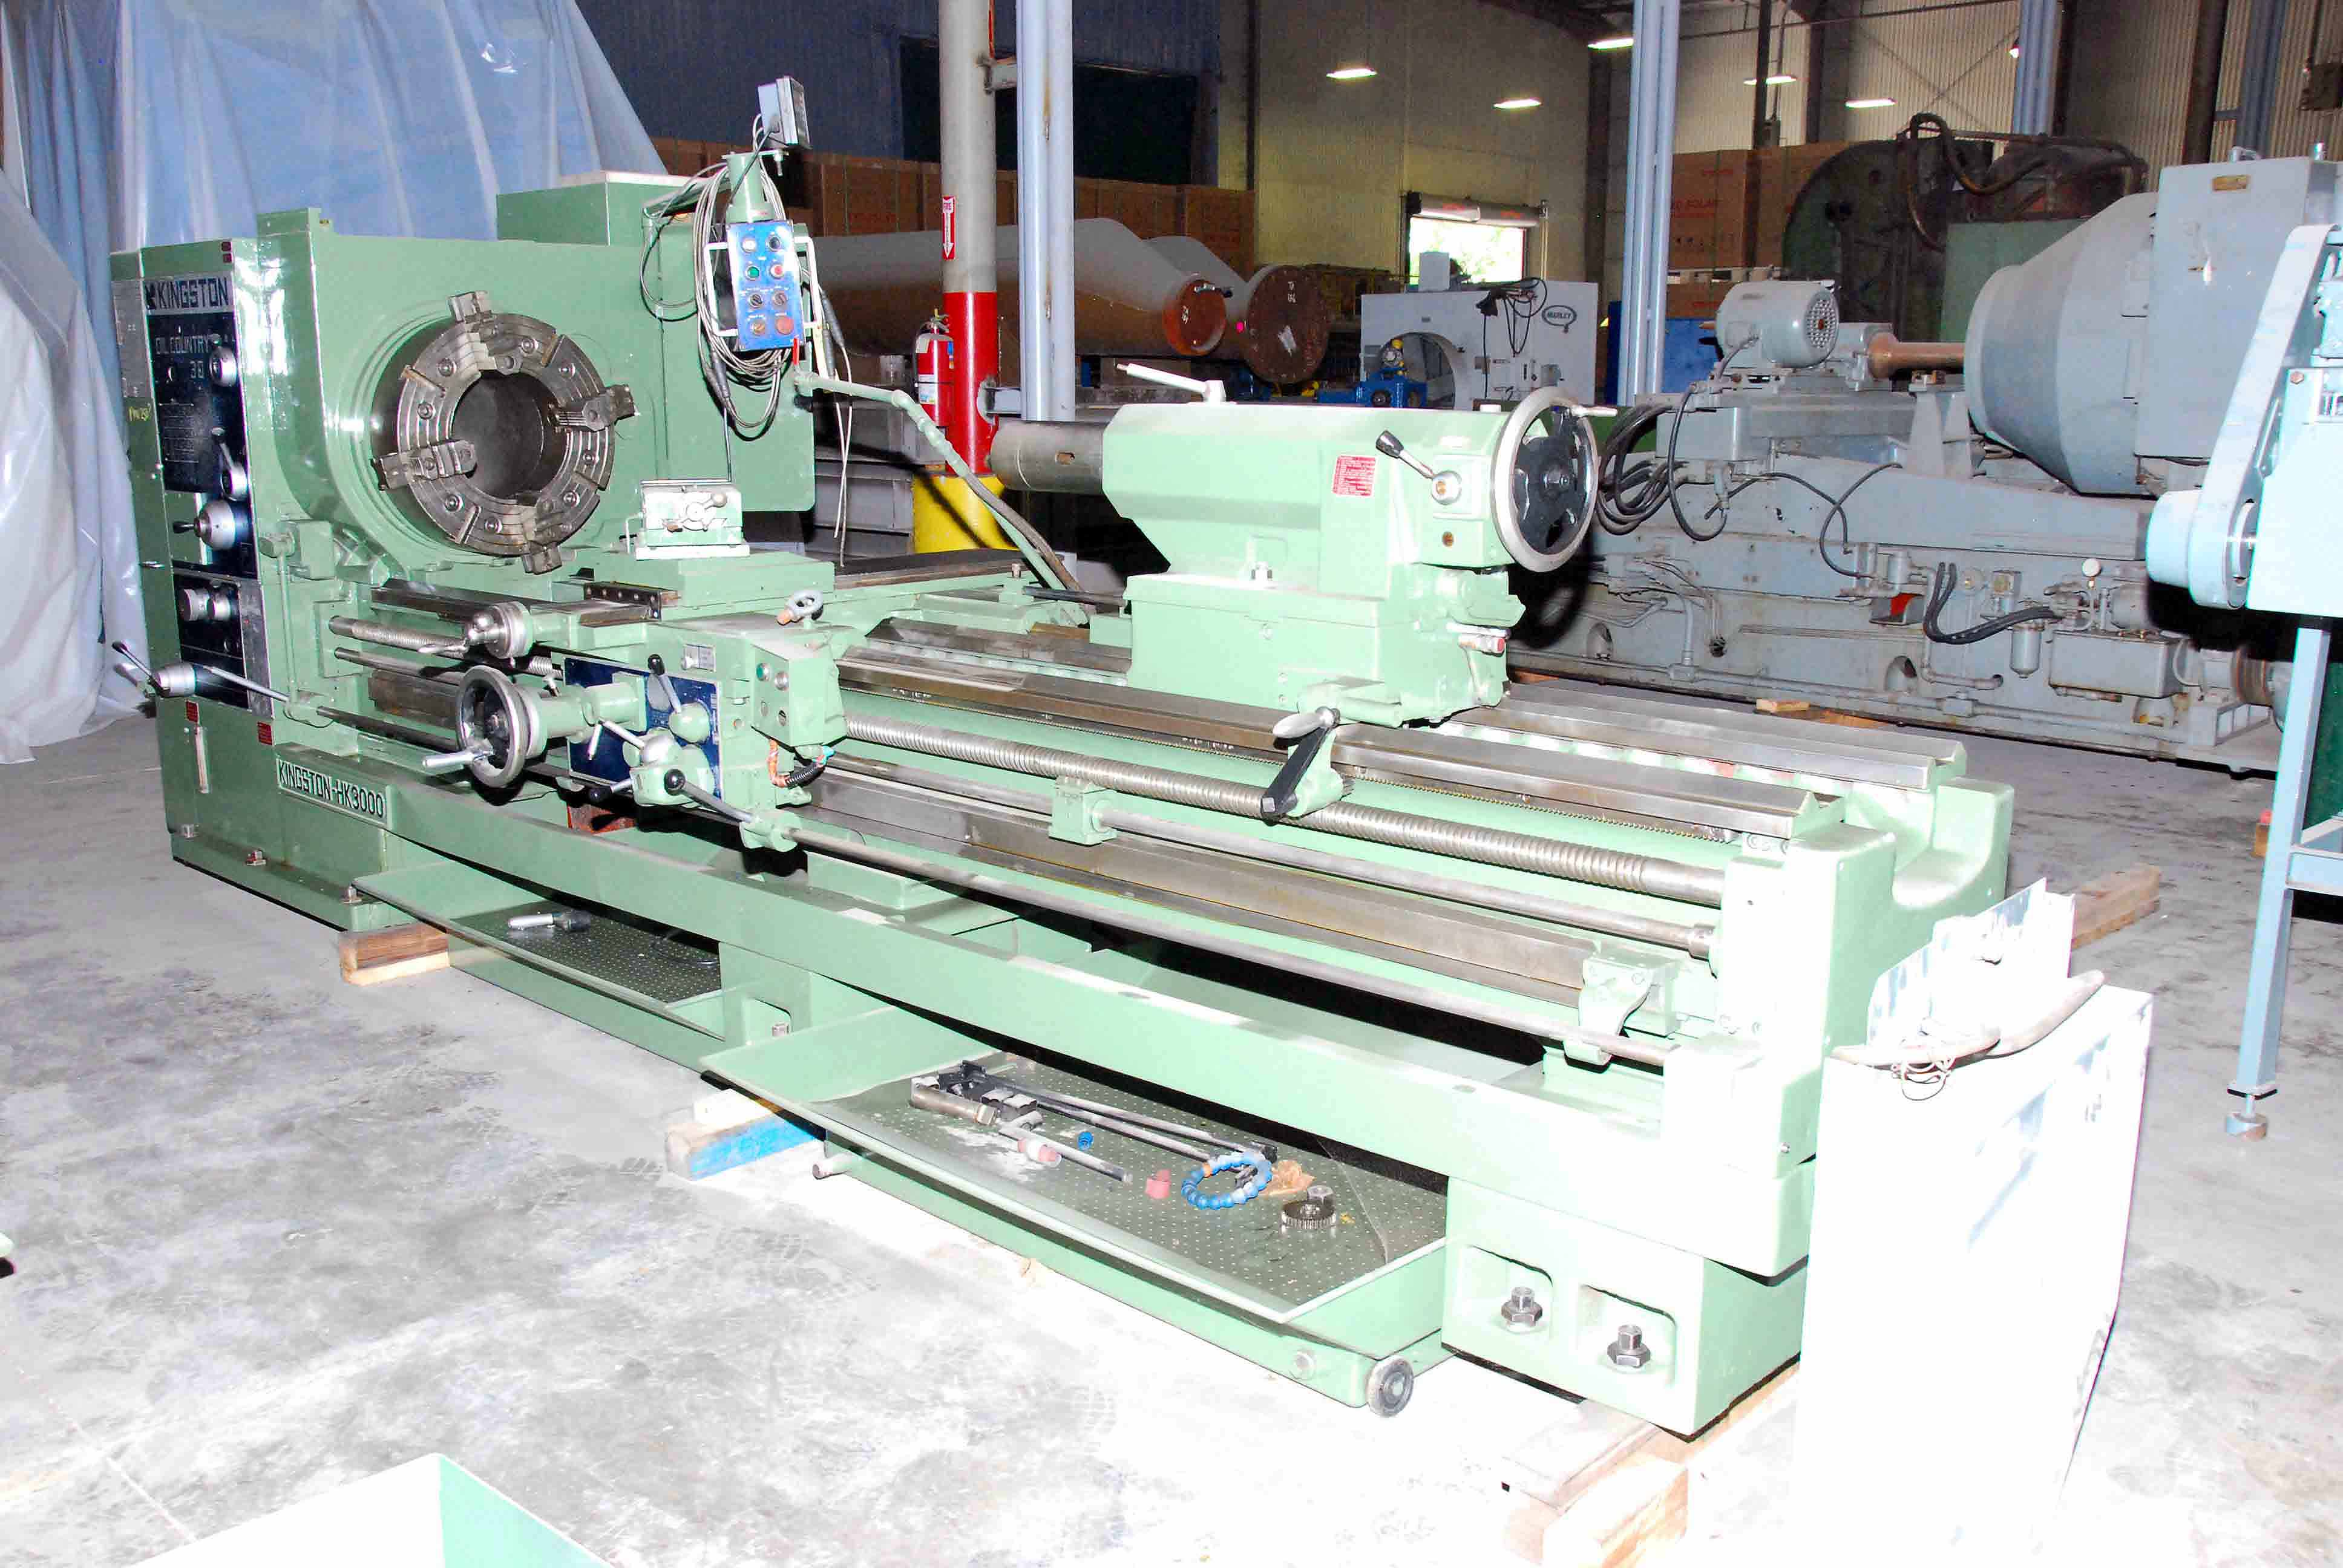 "Lot 18 - HOLLOW SPINDLE LATHE, KINGSTON 30"" OIL COUNTRY MDL. HK-3000, new 2007, 12/5"" spdl. bore, 30"" sw."